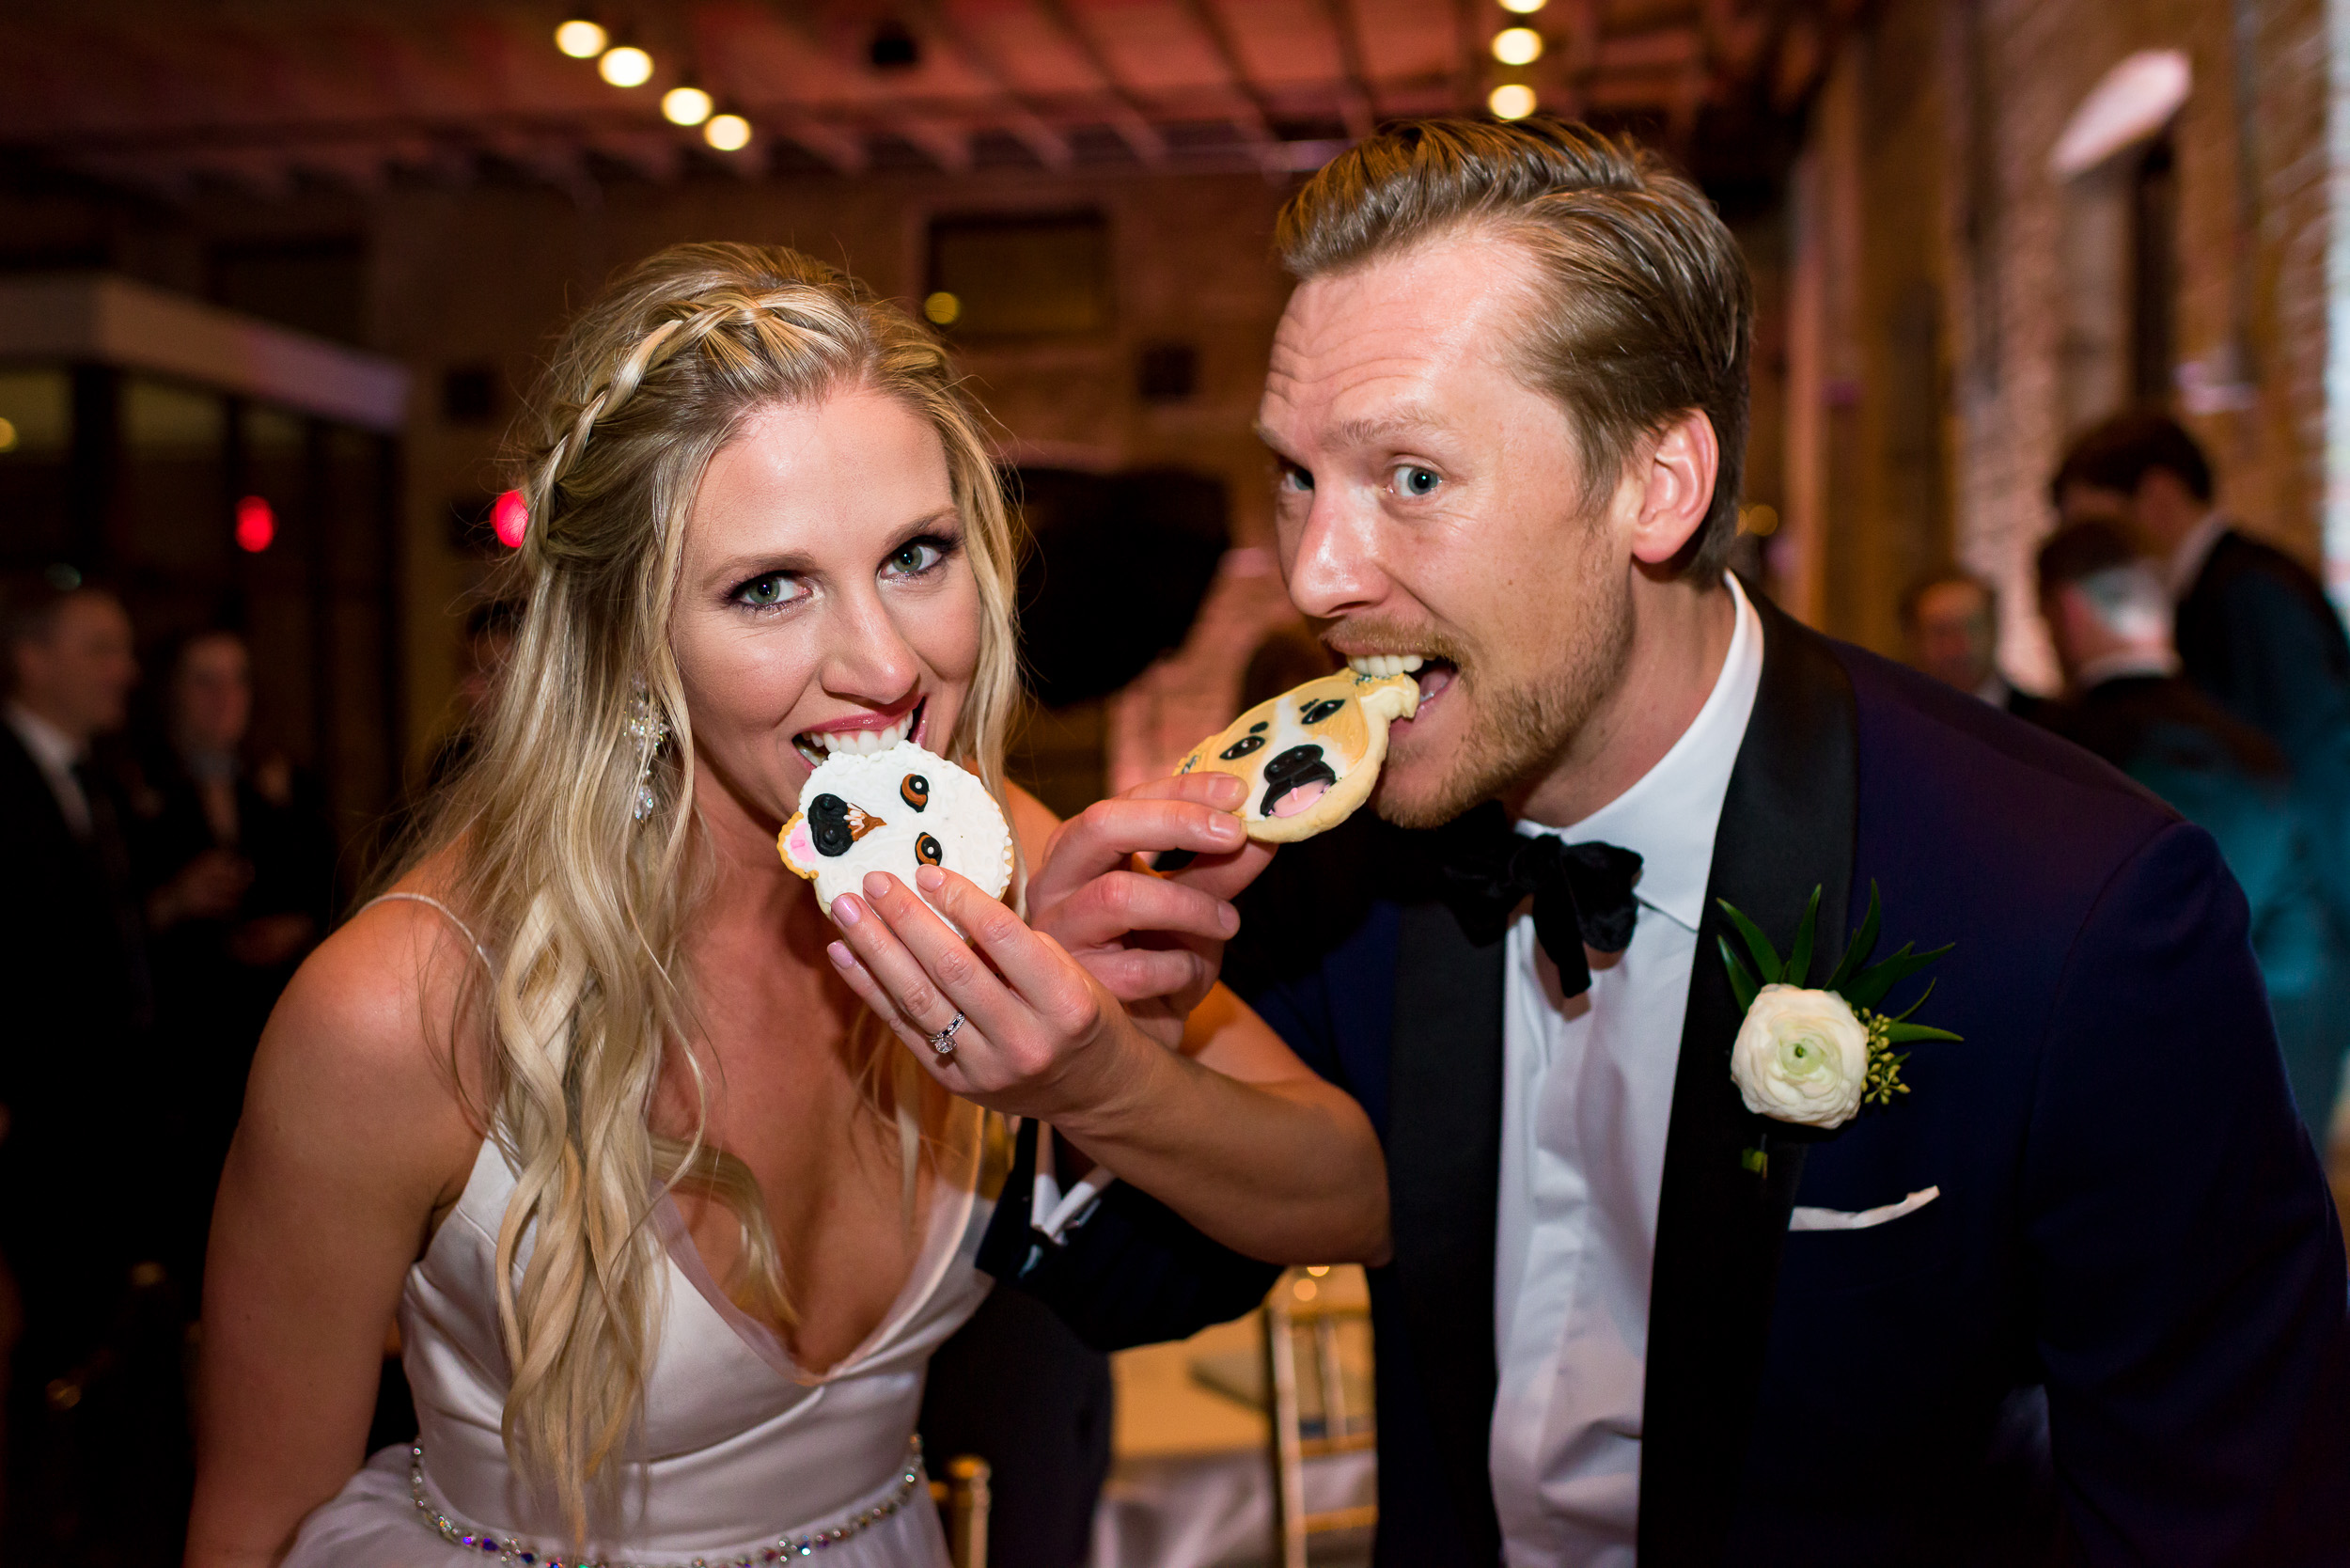 Austin-wedding-photographers-brazos-hall-downtown-cookies-dogs-puppy-bride-groom